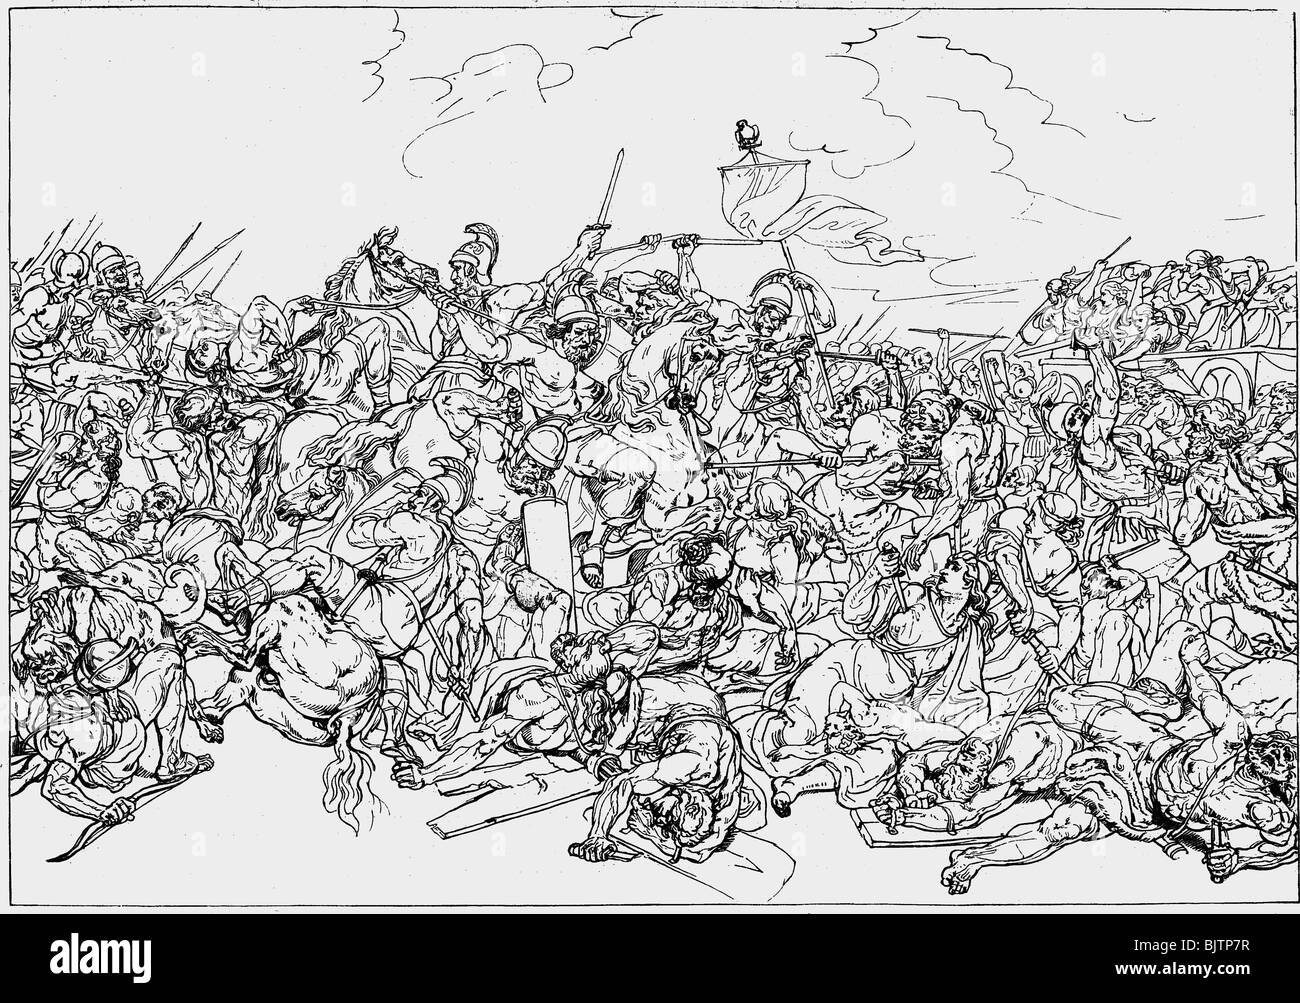 events, Cimbrian War 113 - 101 BC, Battle of Vercellae, 30.7.101 BC, wood engraving after drawing by Karl Ens, 19th - Stock Image